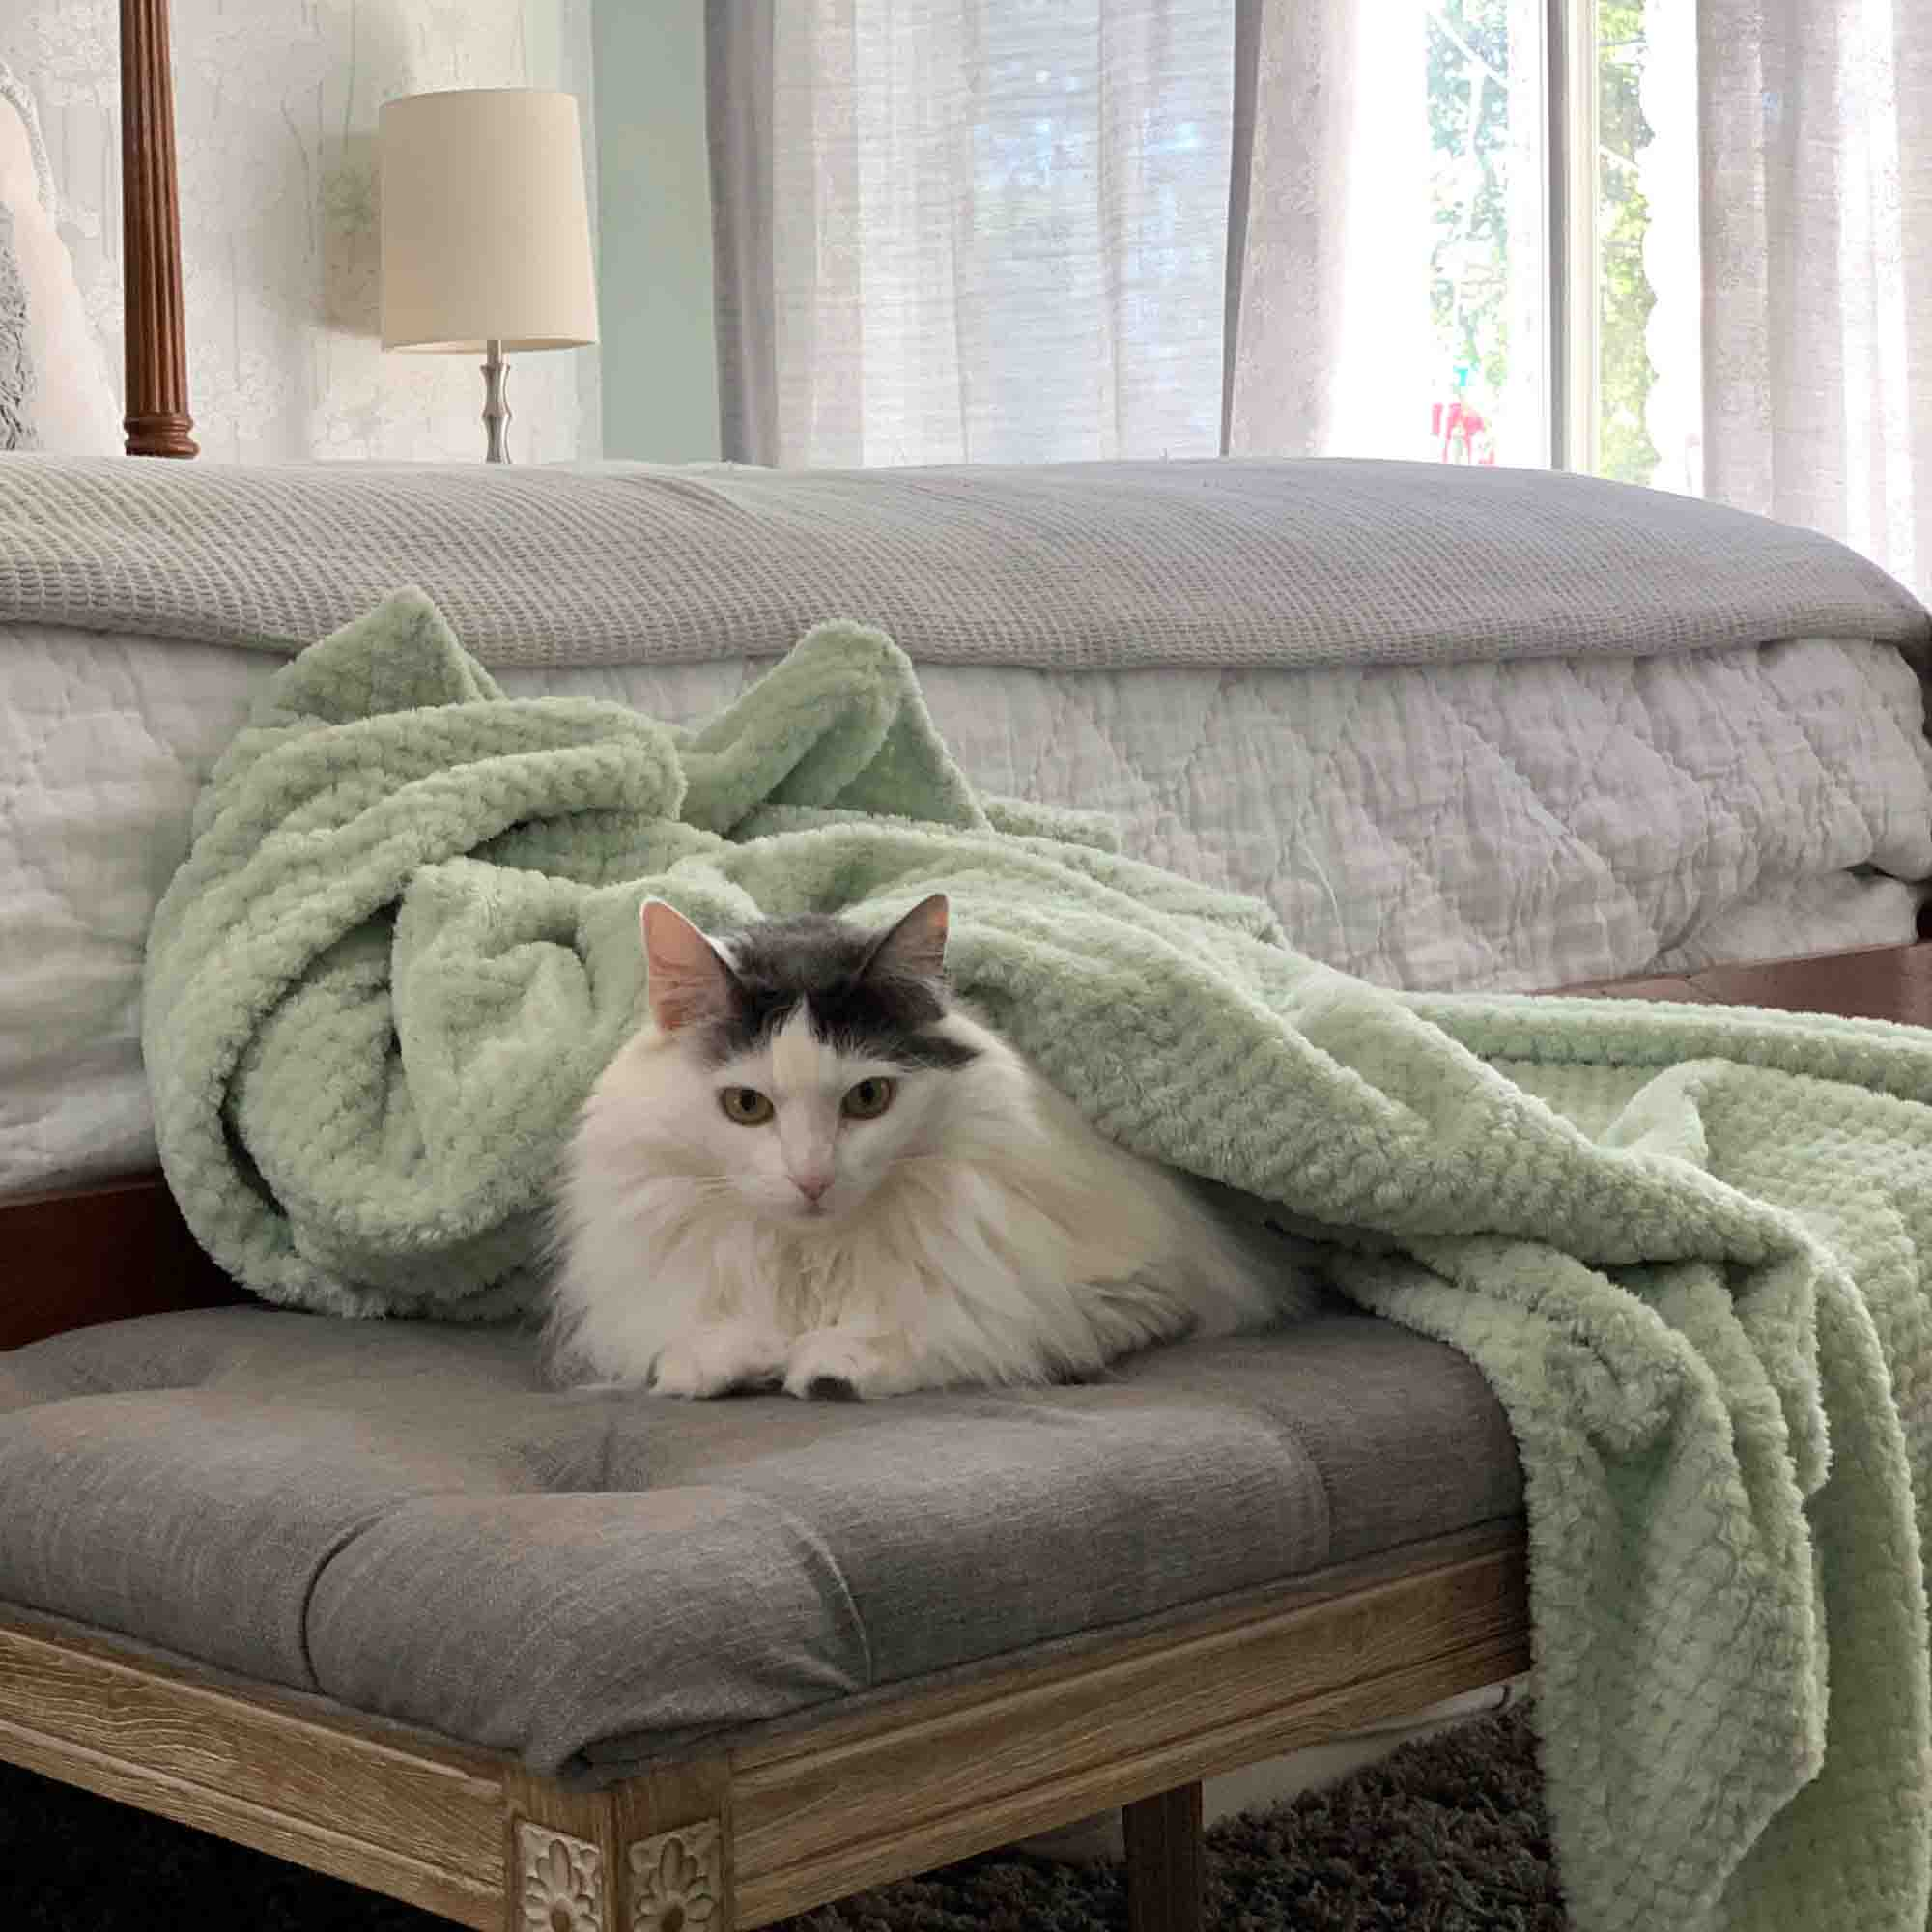 White and gray cat laying on a bench covered by a throw blanket. Celadon Steamer Color